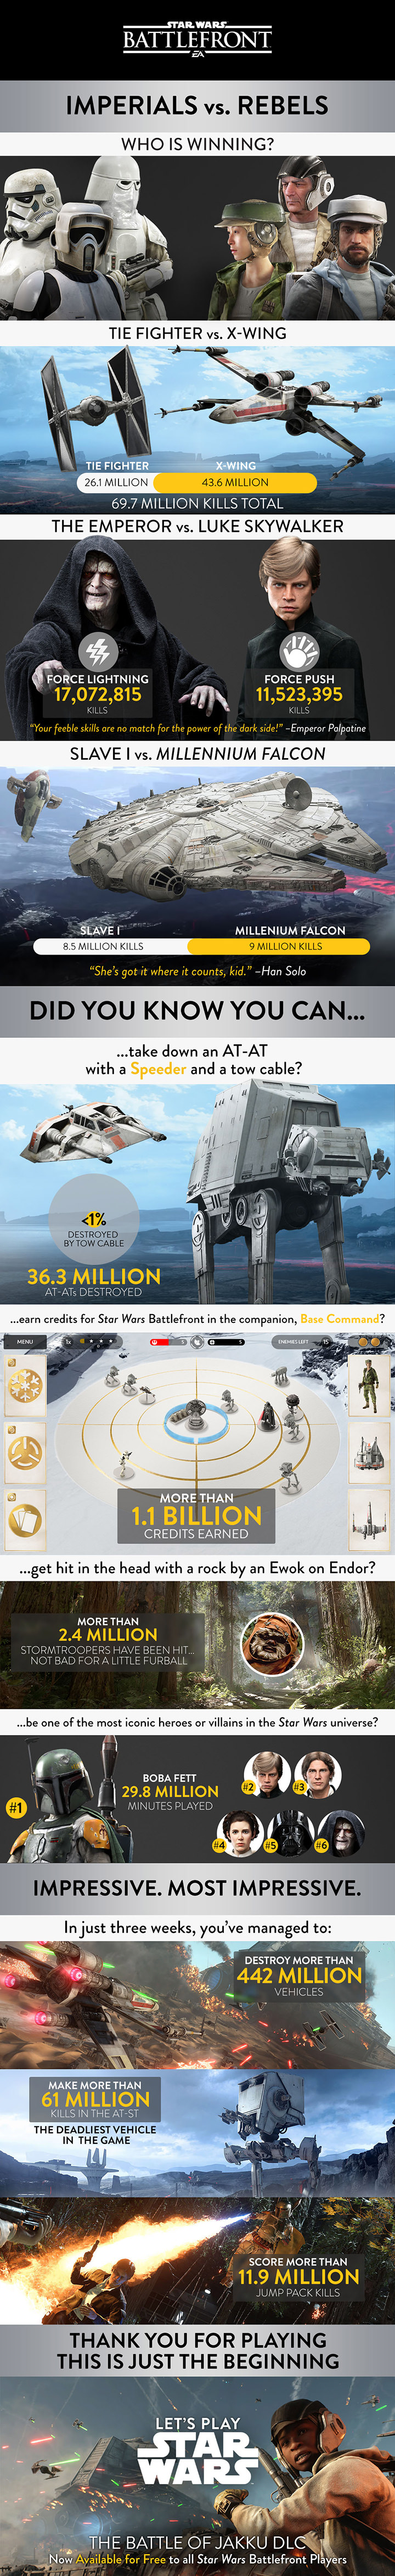 star_wars_battlefront_launch_infographic-720p